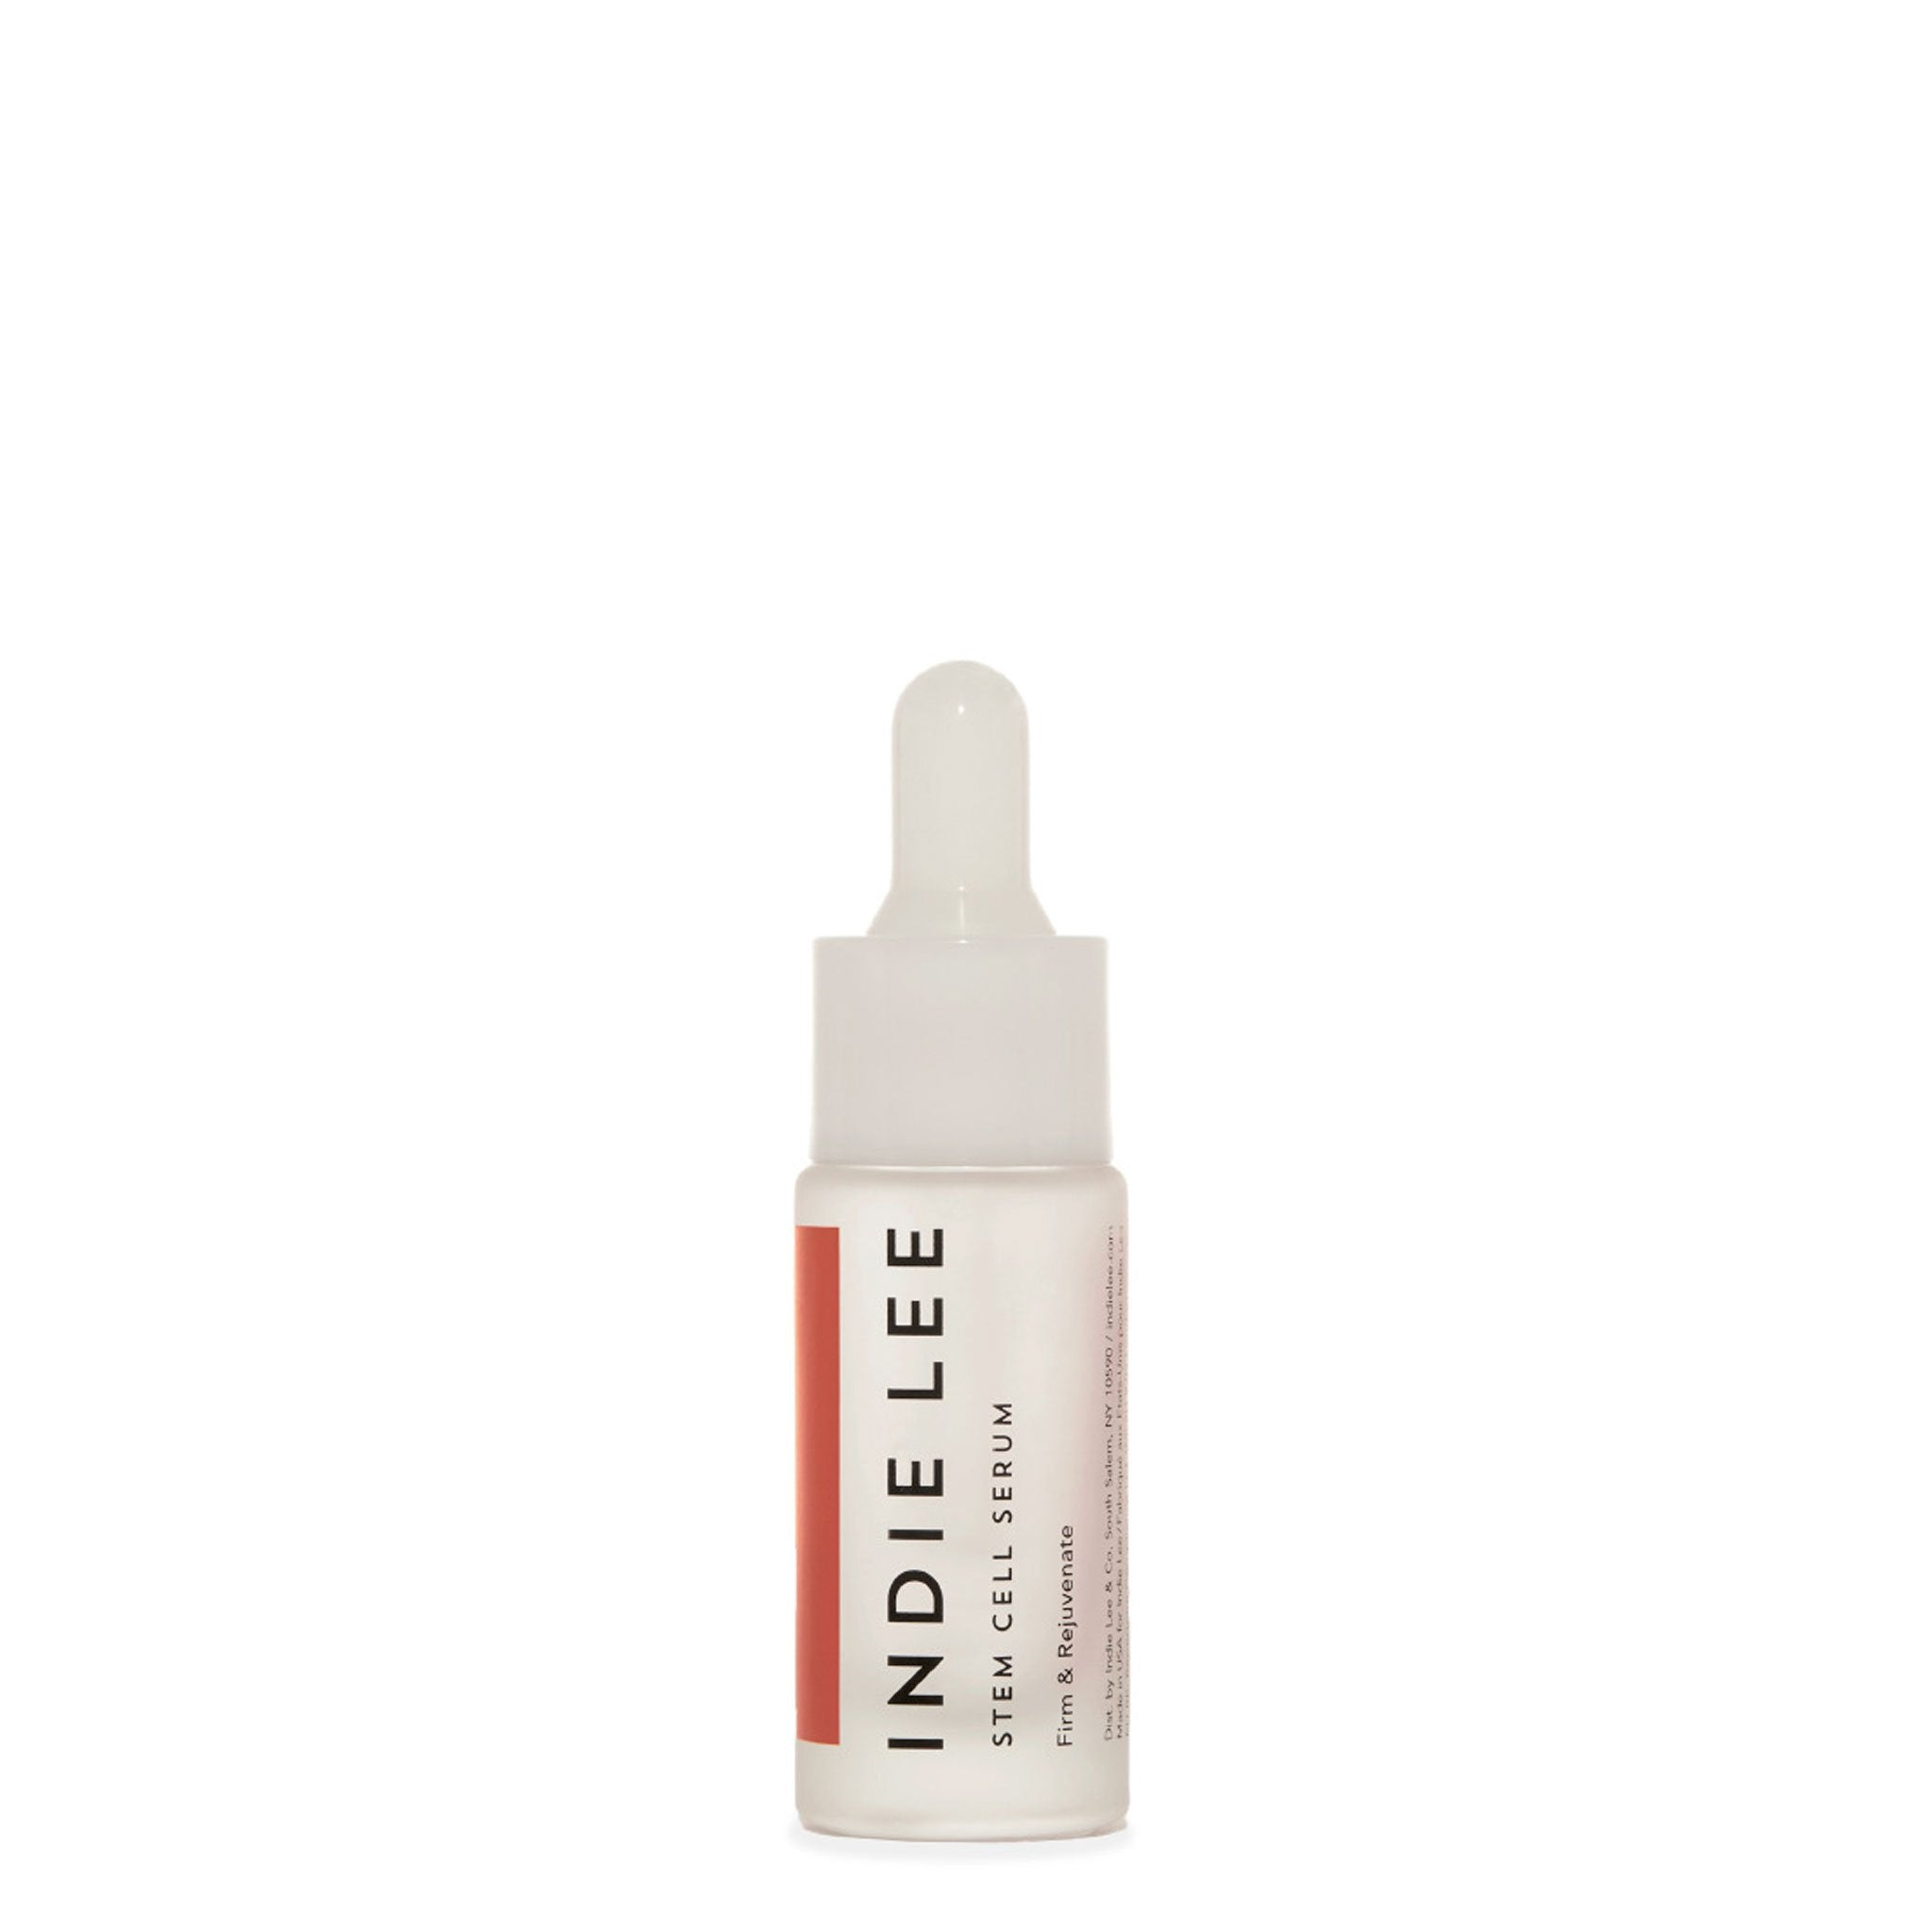 Indie Lee - Stem Cell Serum